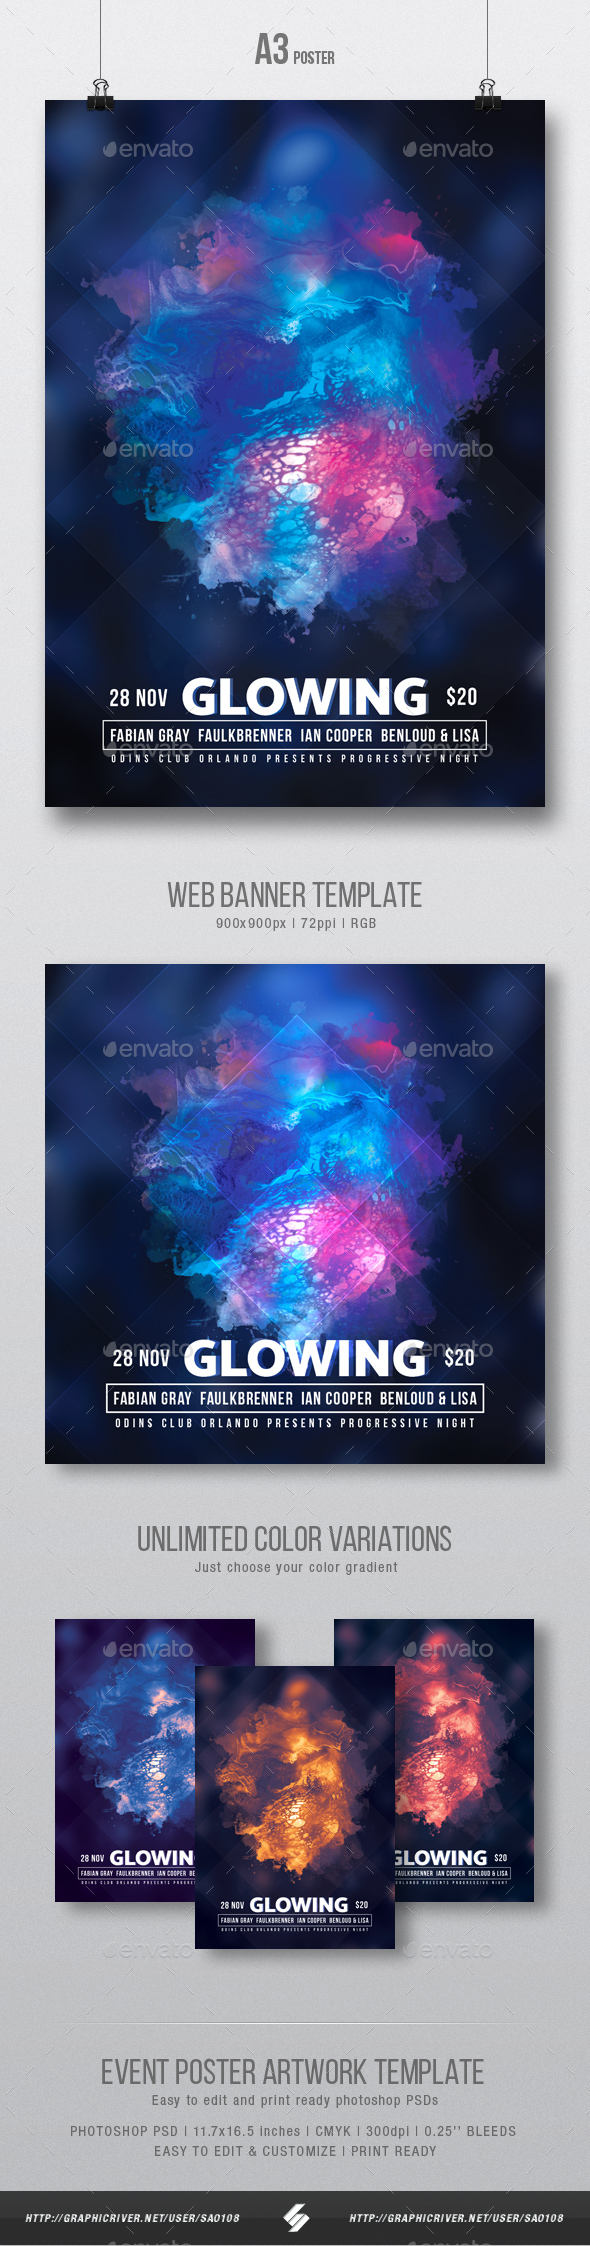 Glowing - Progressive Party Flyer / Poster Artwork Template A3 - Clubs & Parties Events